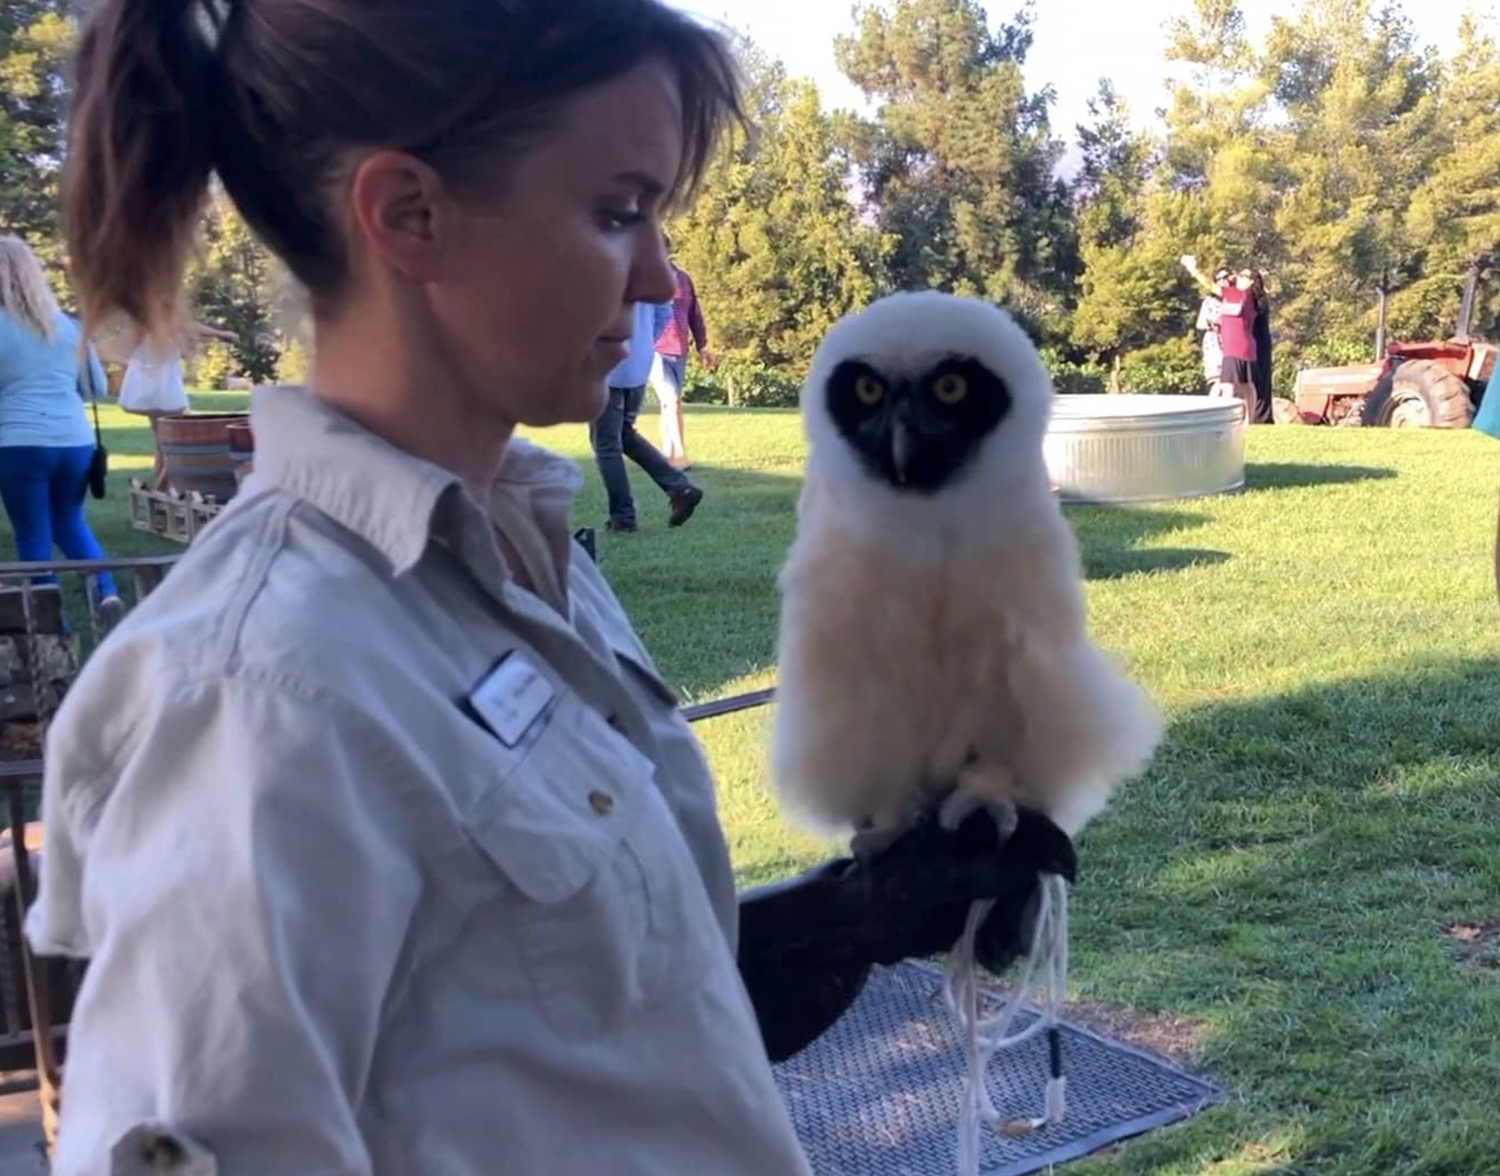 spectacled owl at an event